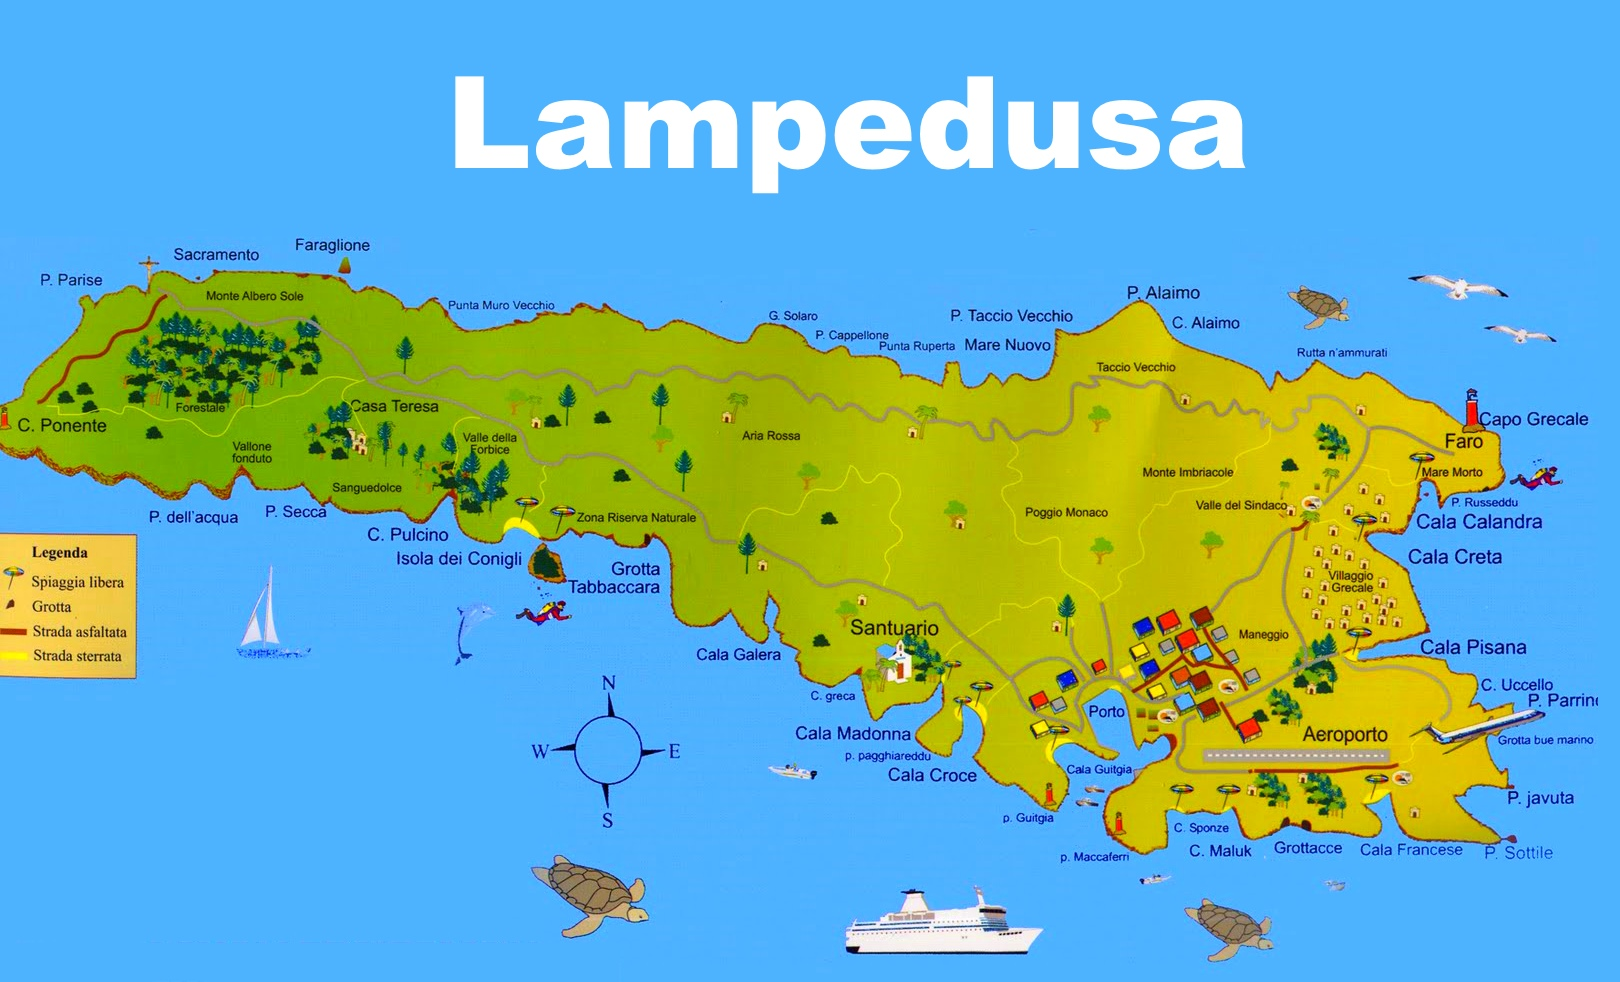 lampedusa tourist map